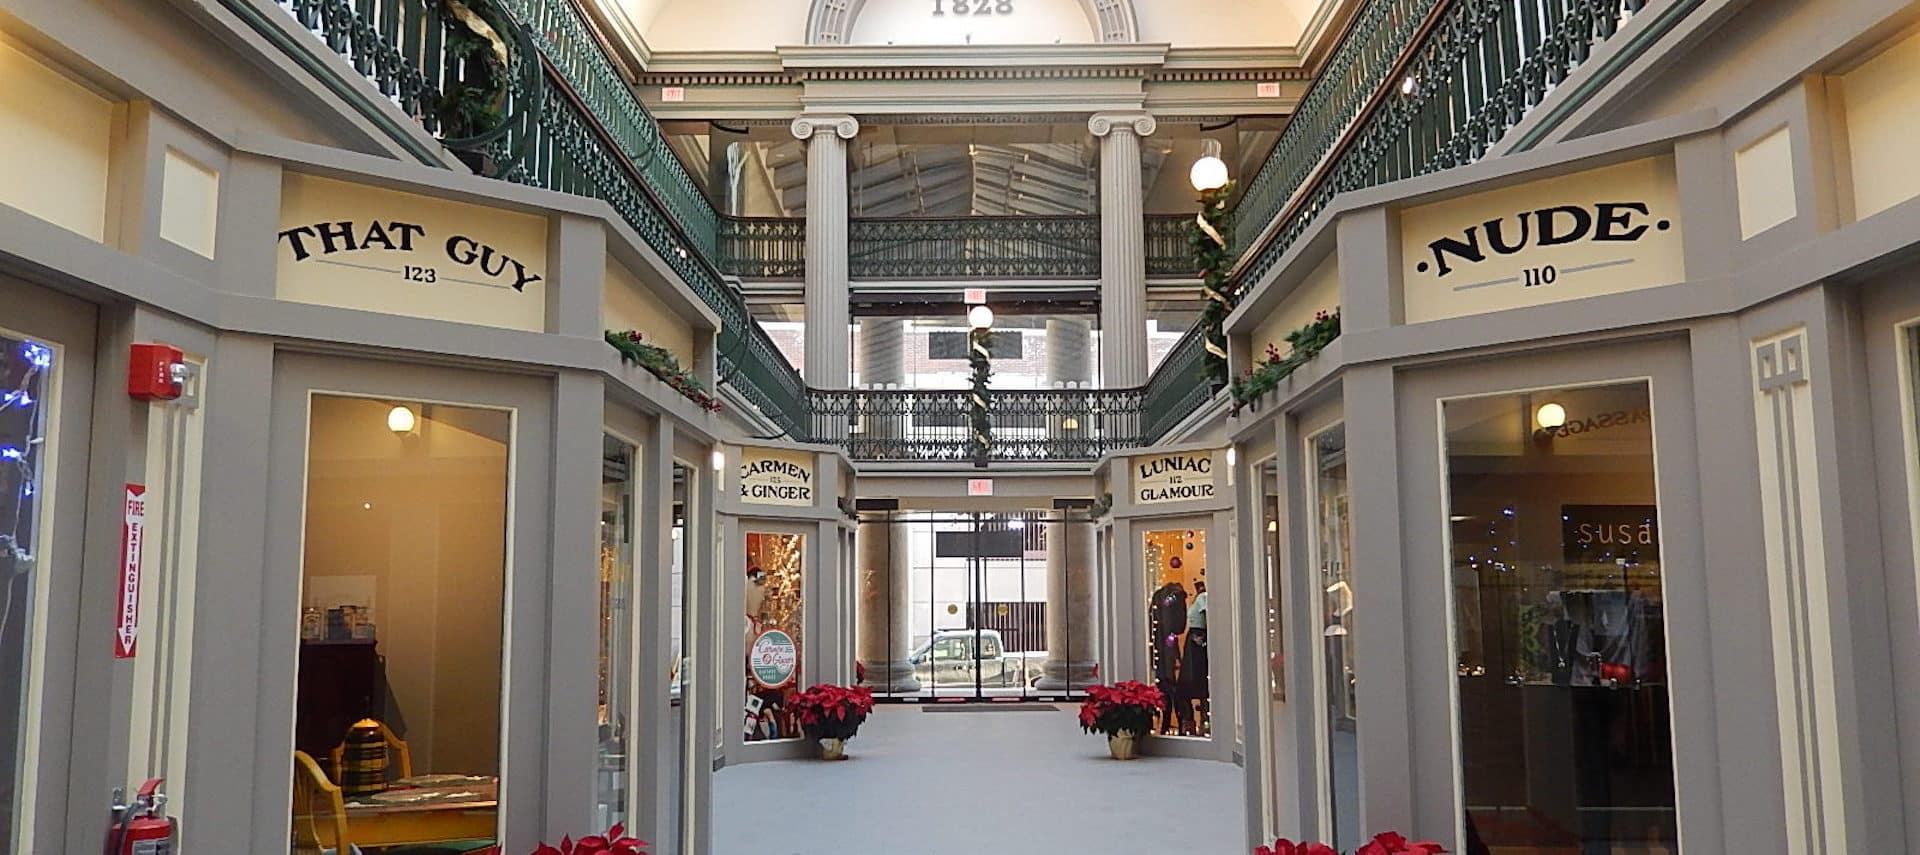 An indoor shopping mall corridor lined with holiday poinsettias.